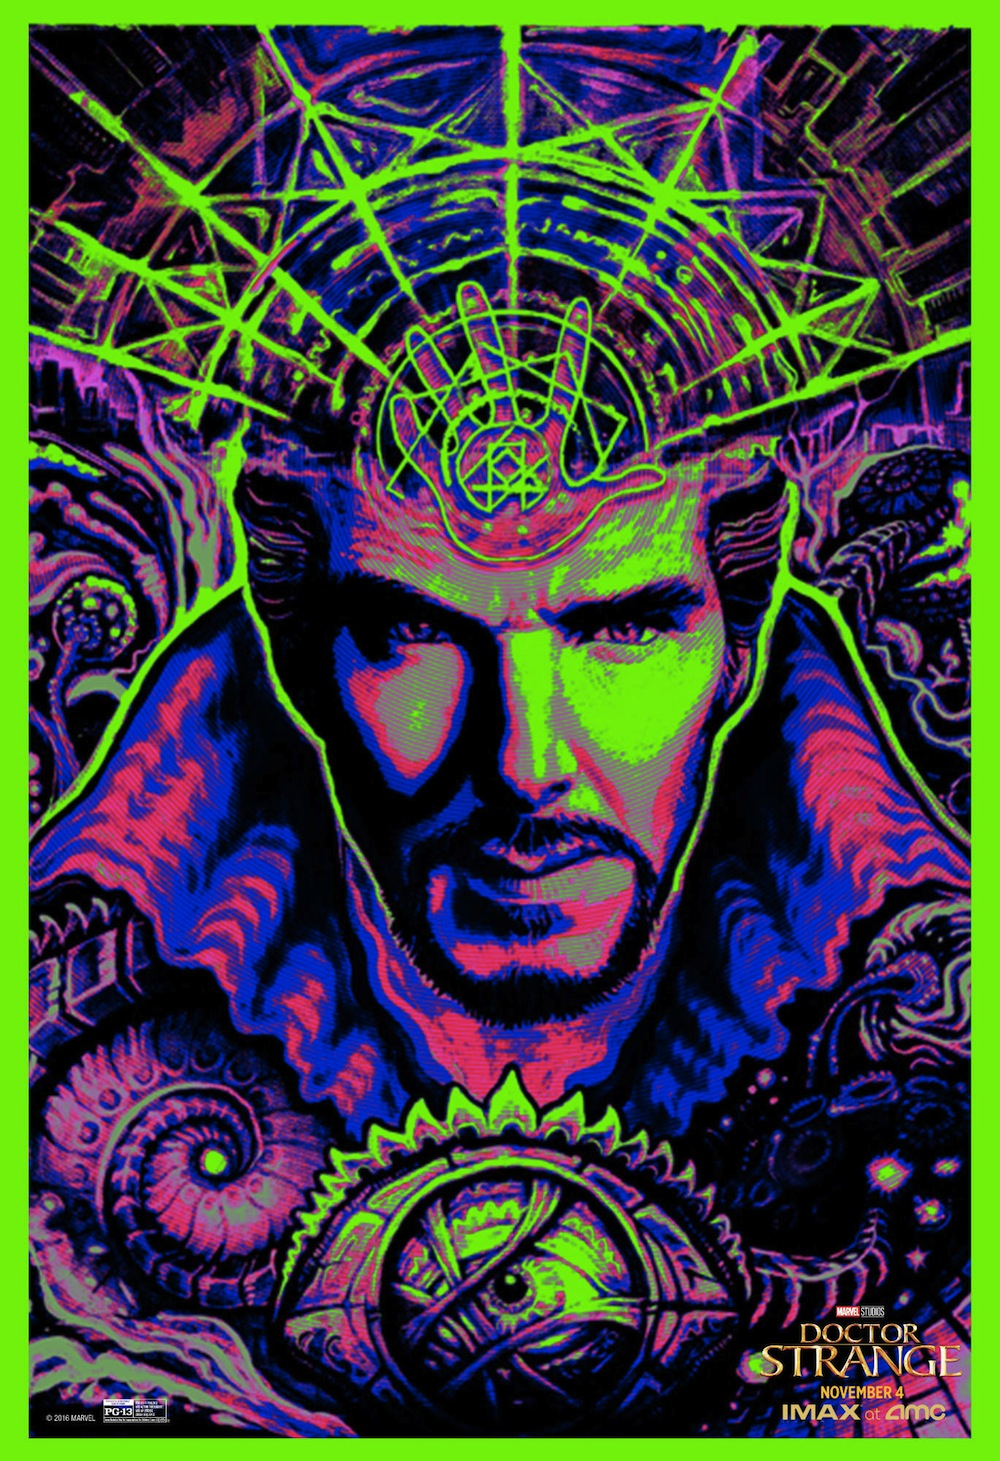 doctor-strange-blacklight-poster-1